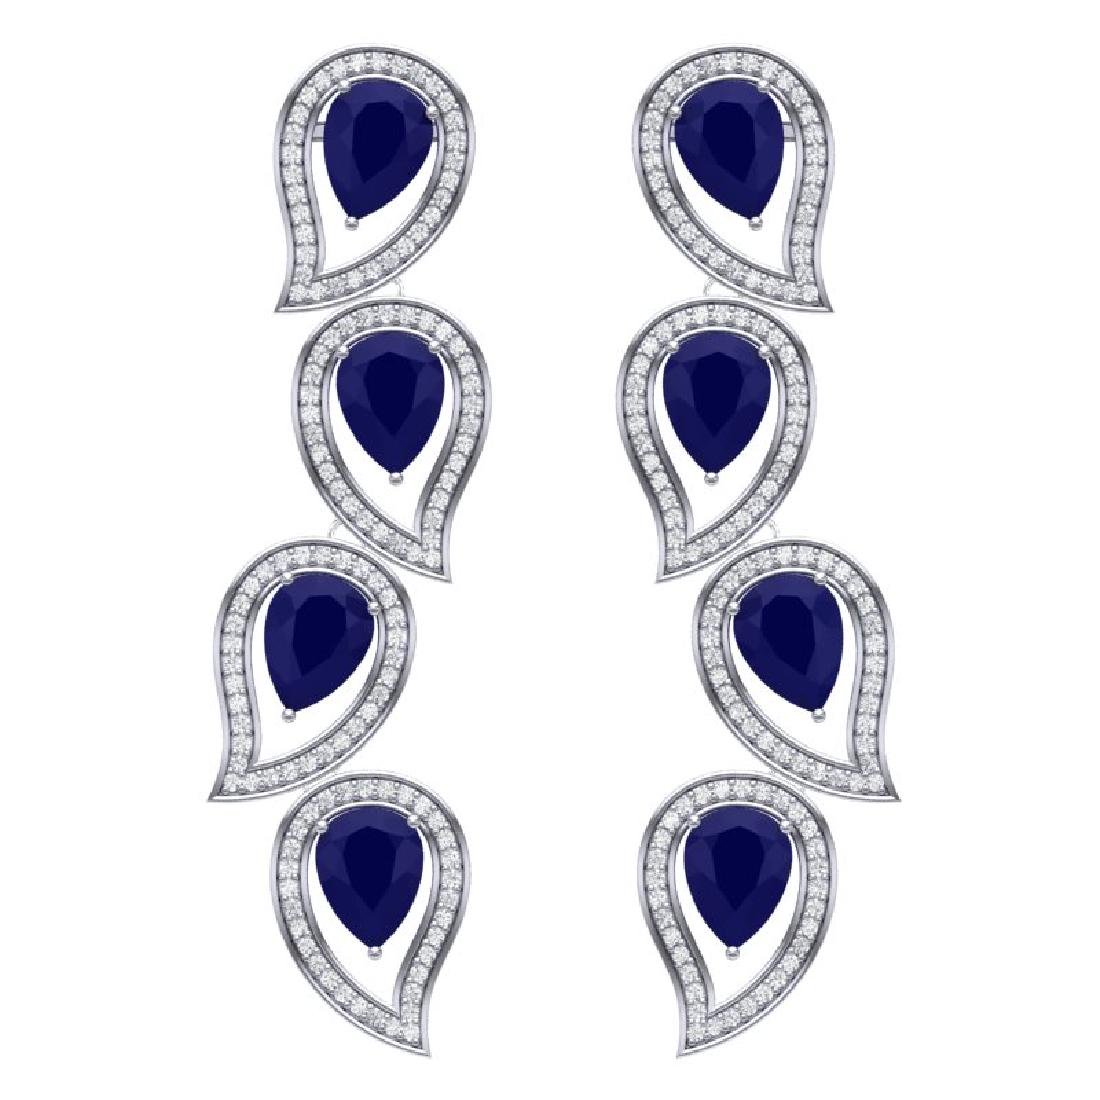 16.44 CTW Royalty Sapphire & VS Diamond Earrings 18K